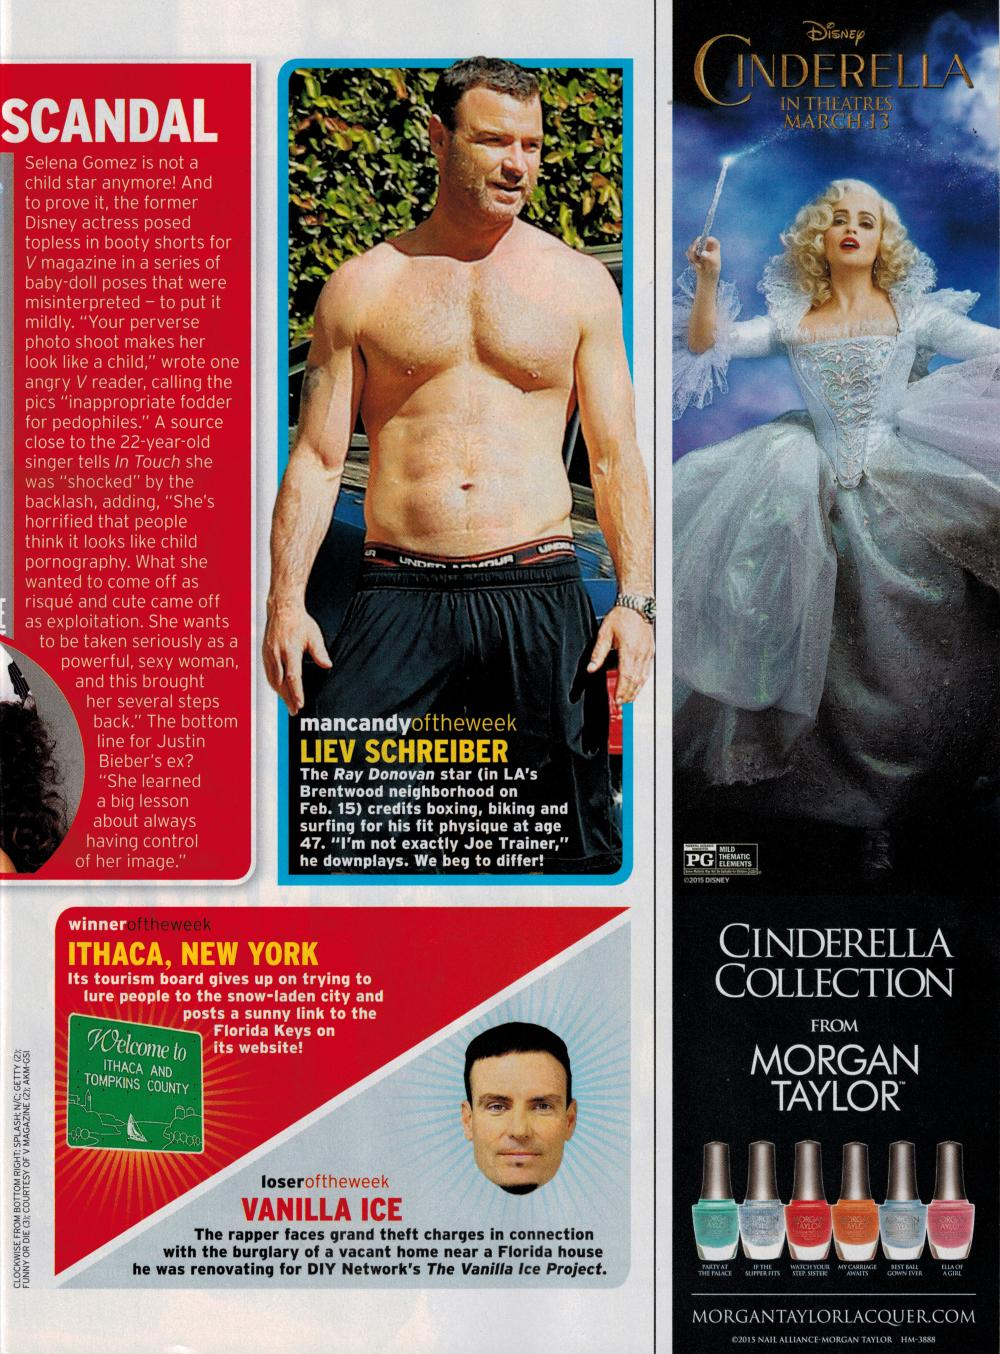 INTOUCH MAGAZINE - March, 2015